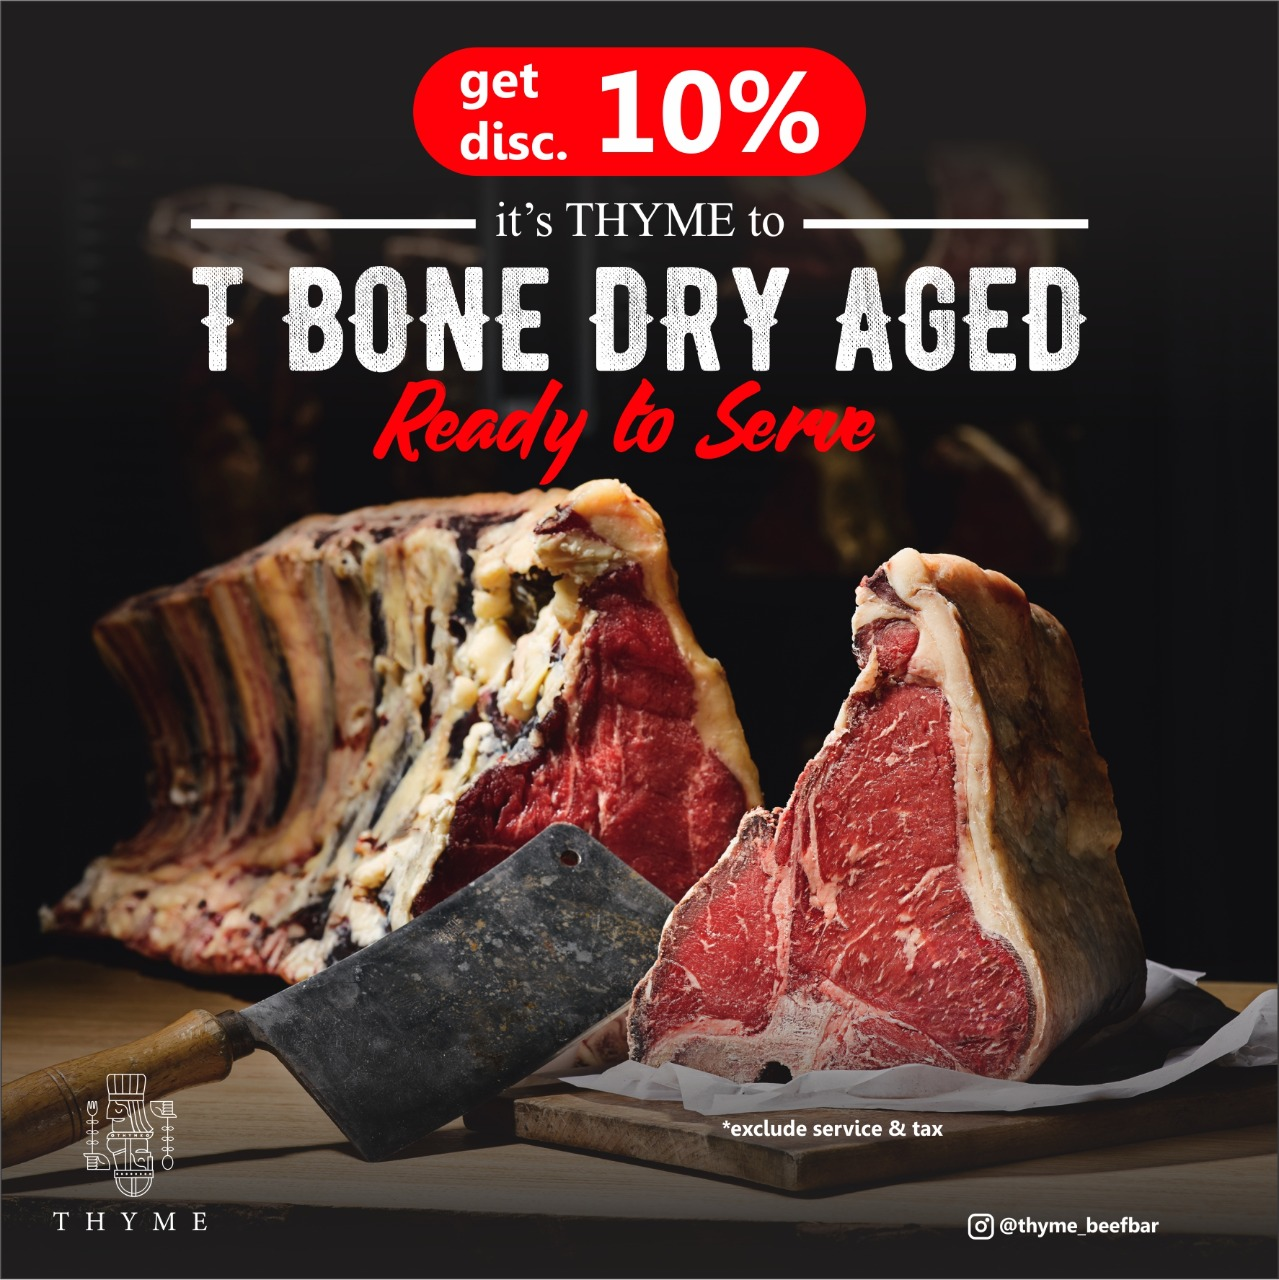 Promo Discount 10% T-BONE Dry Aged at Thyme Beefbar Eatery